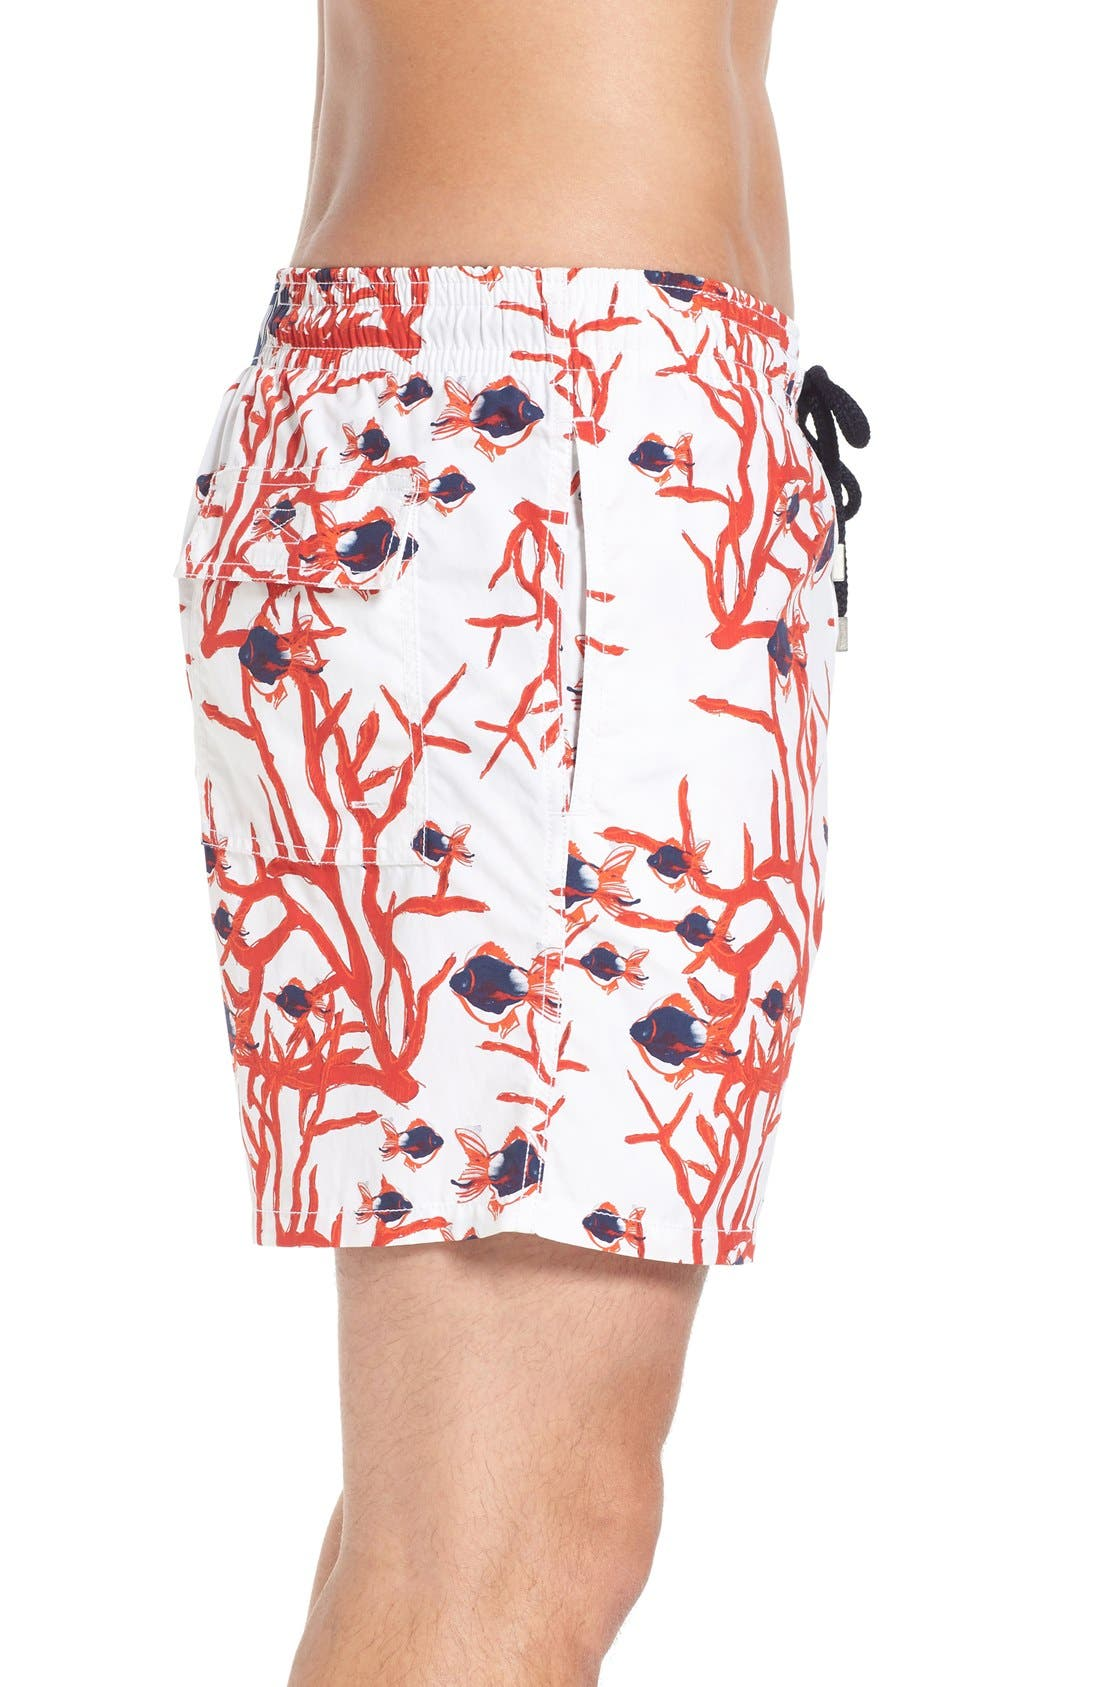 Coral & Fish Print Swim Trunks,                             Alternate thumbnail 3, color,                             White